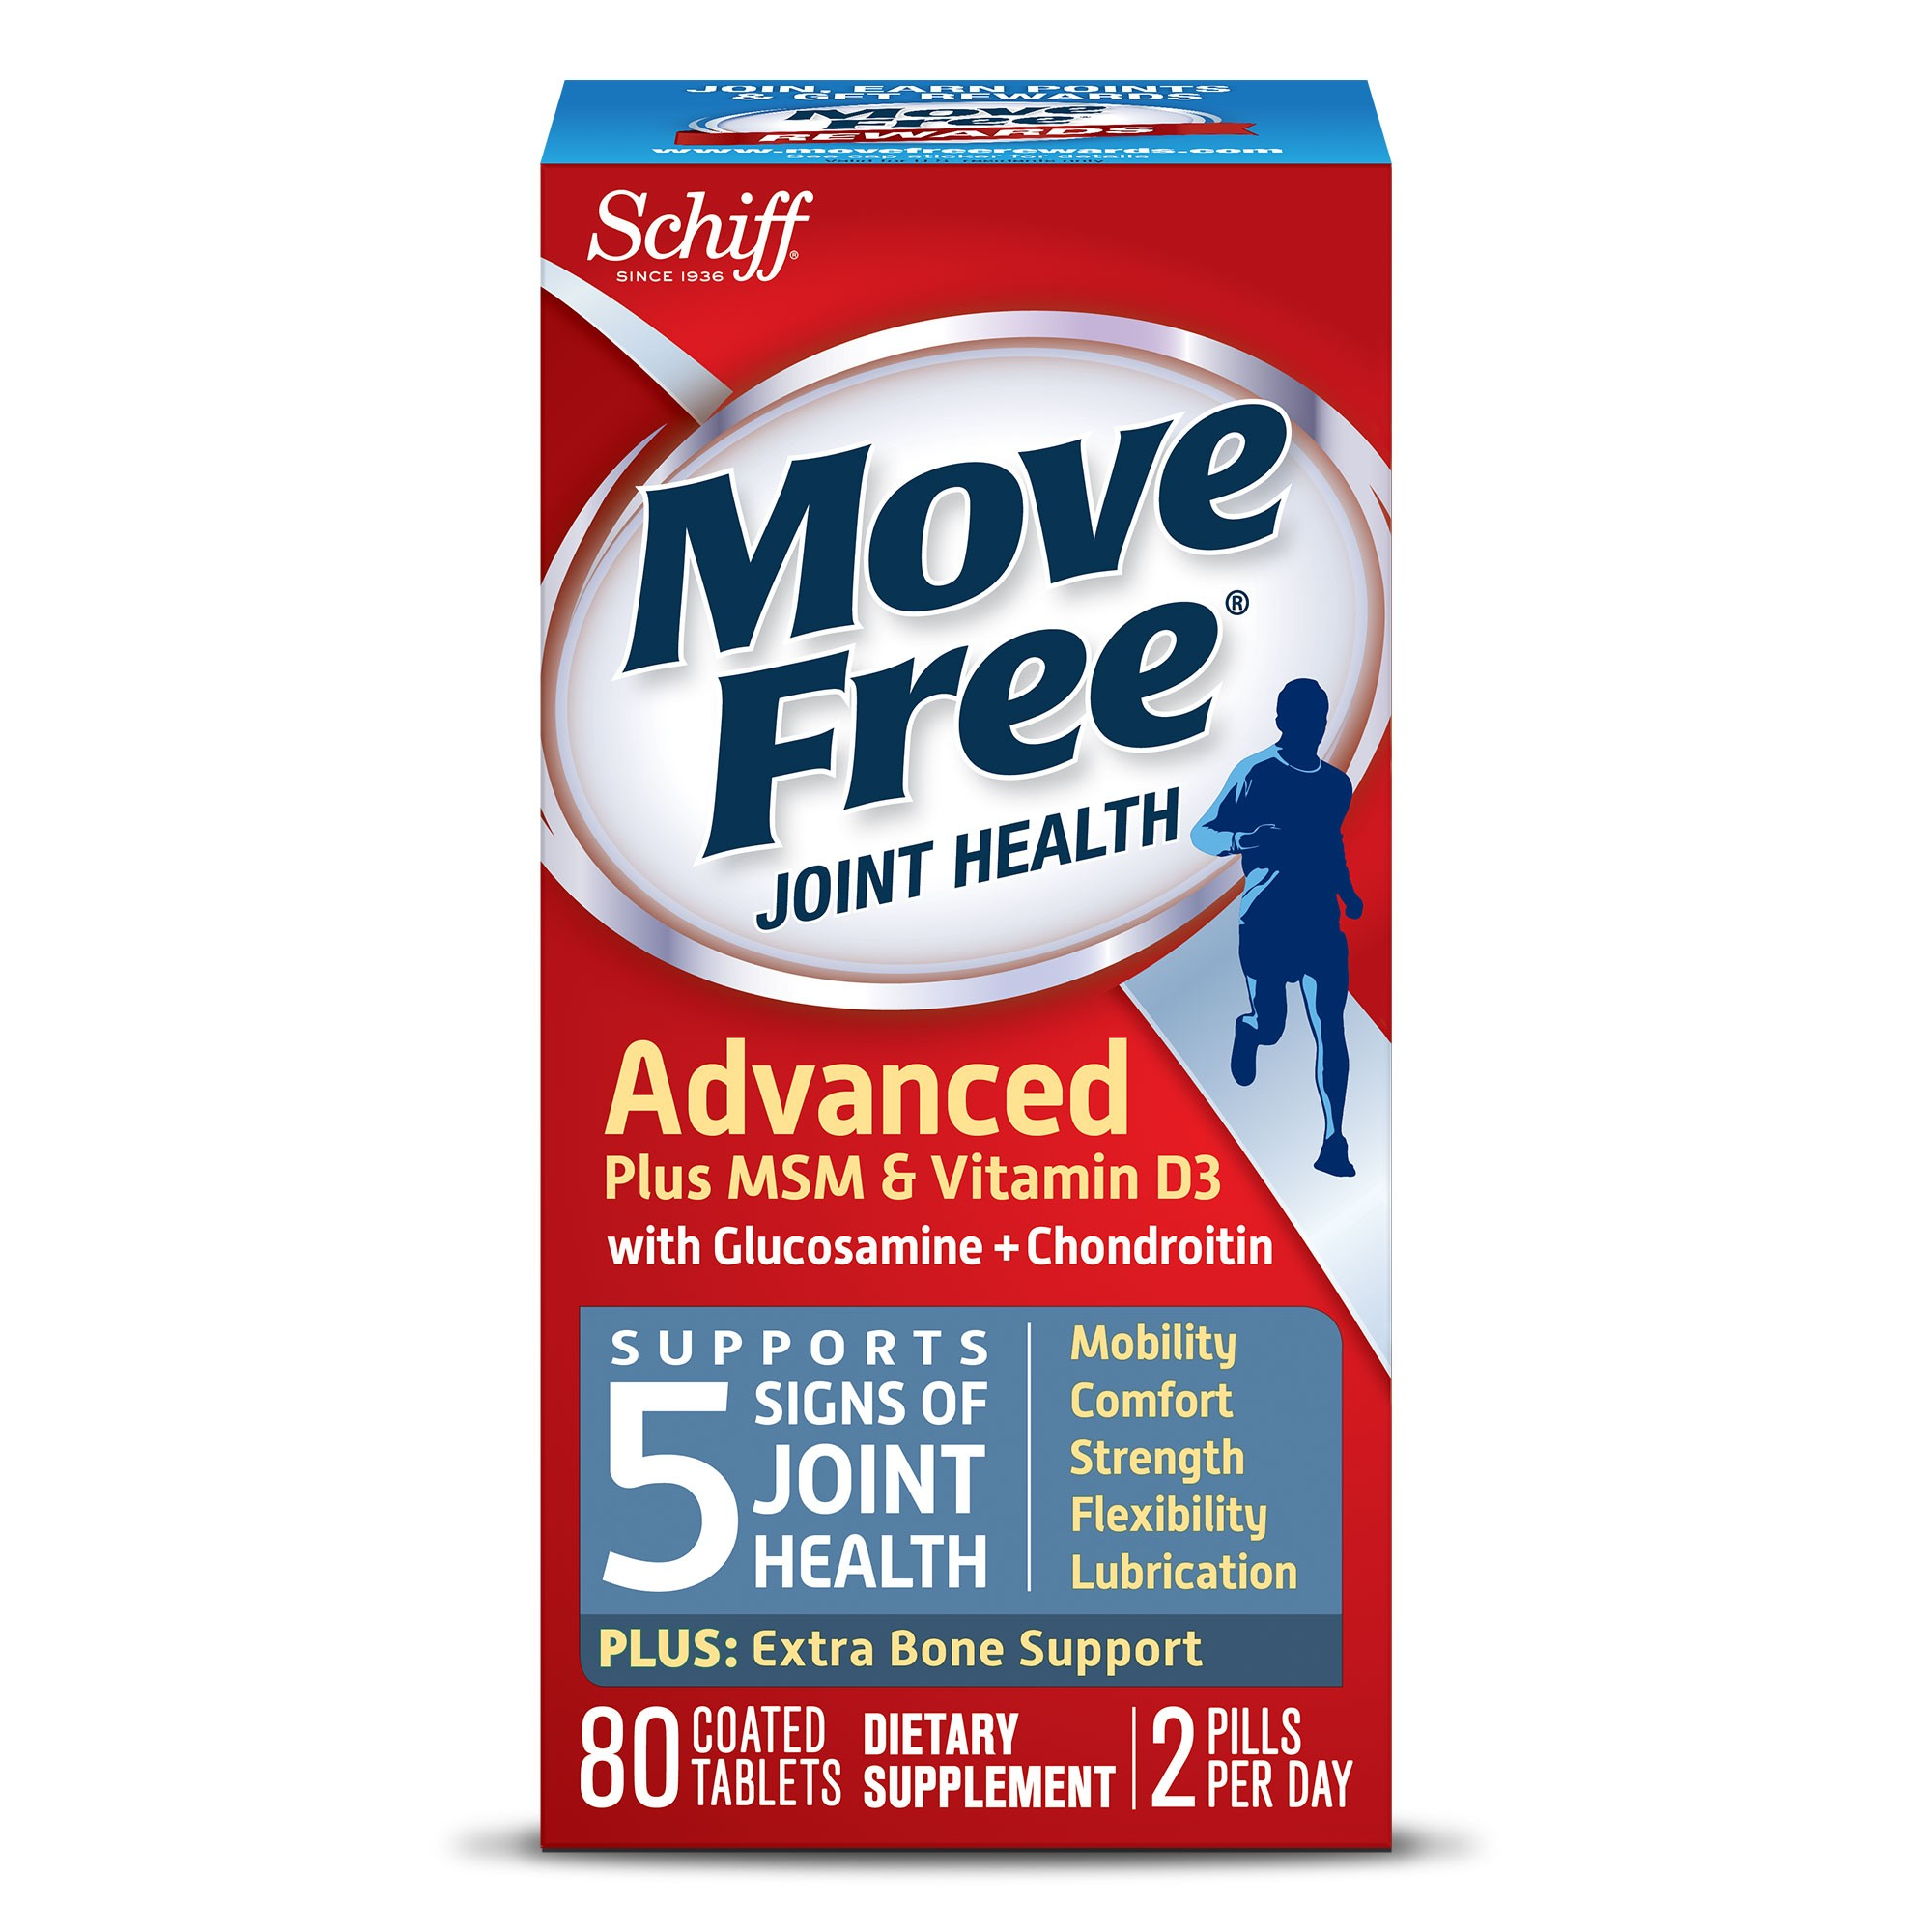 Move Free Advanced Plus MSM and Vitamin D3 80 count Joint Health Supplement with Glucosamine and Chondroitin Walmart